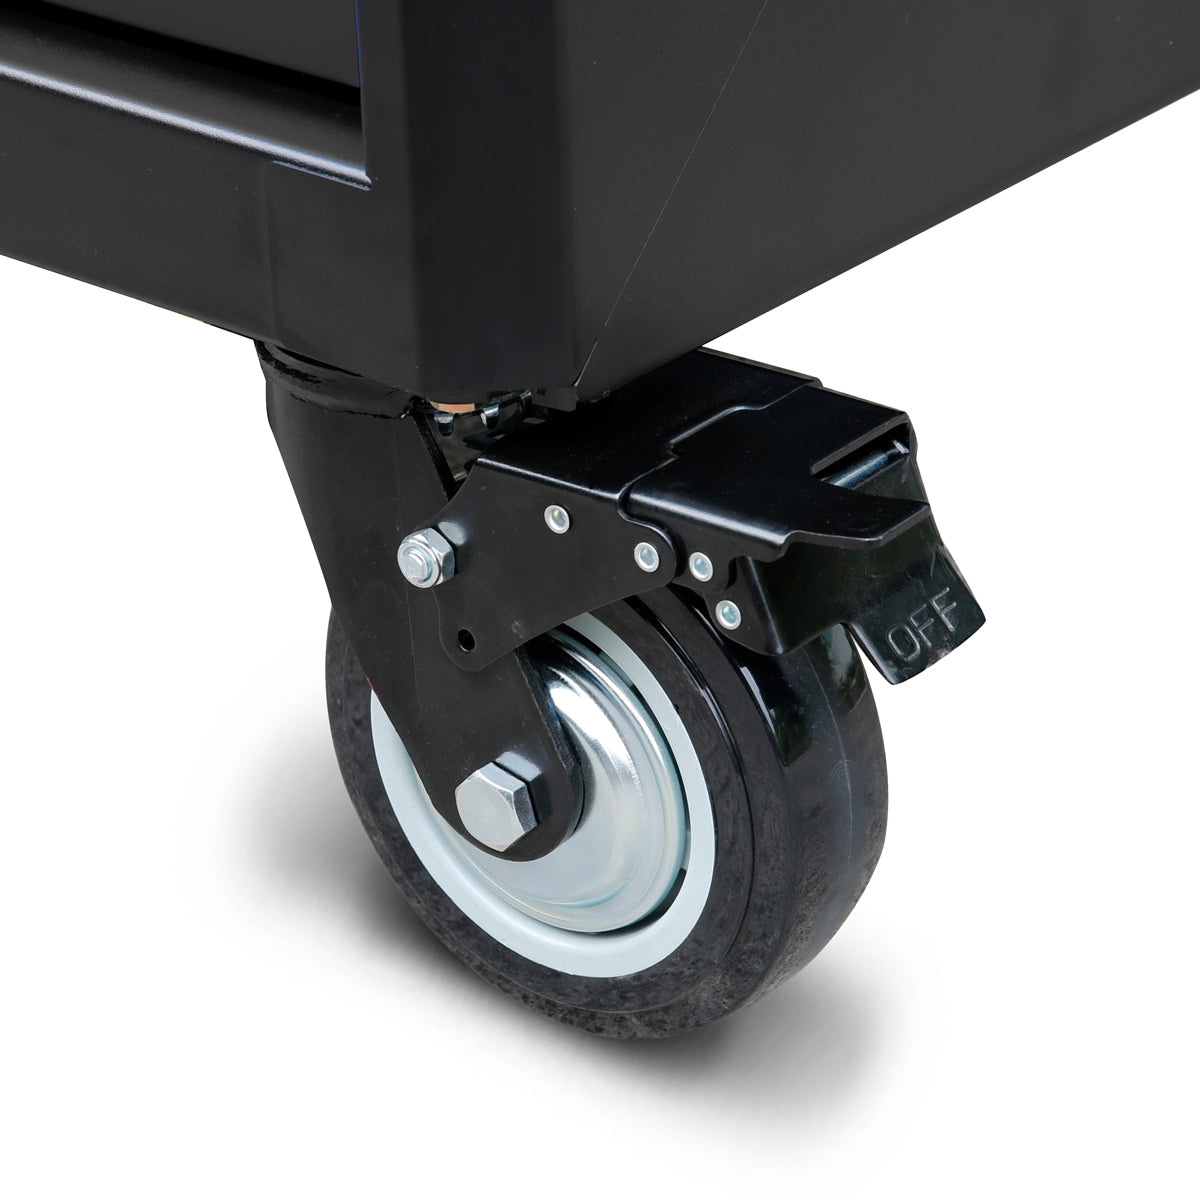 Tool Cabinet: Rugged casters